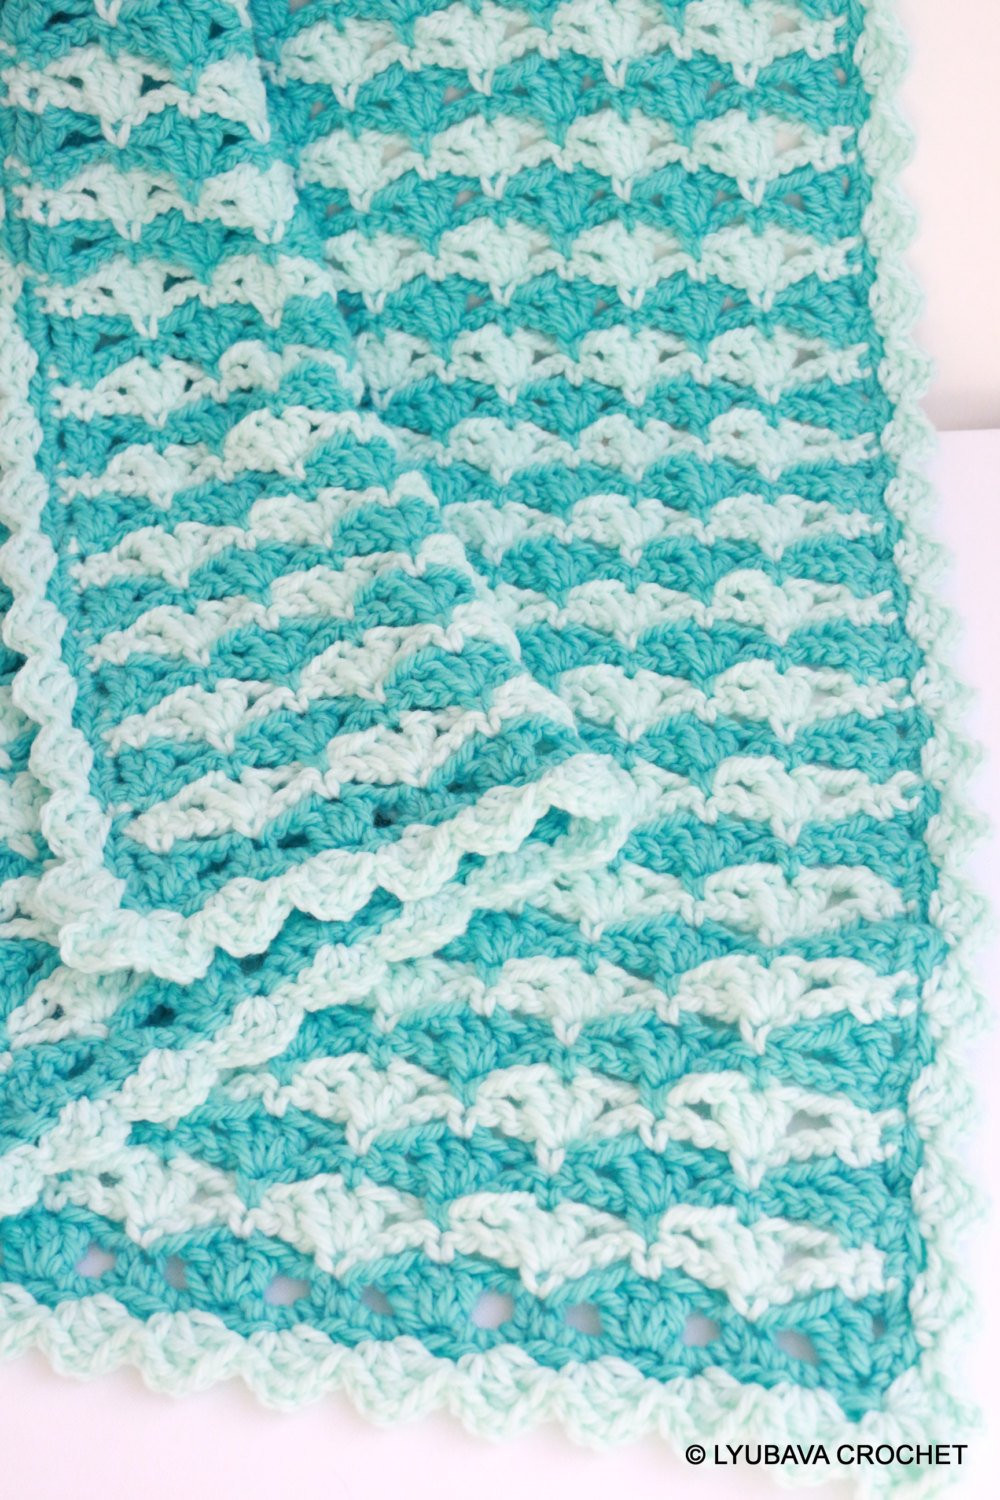 Turquoise BABY BLANKET Chunky Crochet Blanket For Baby Boy